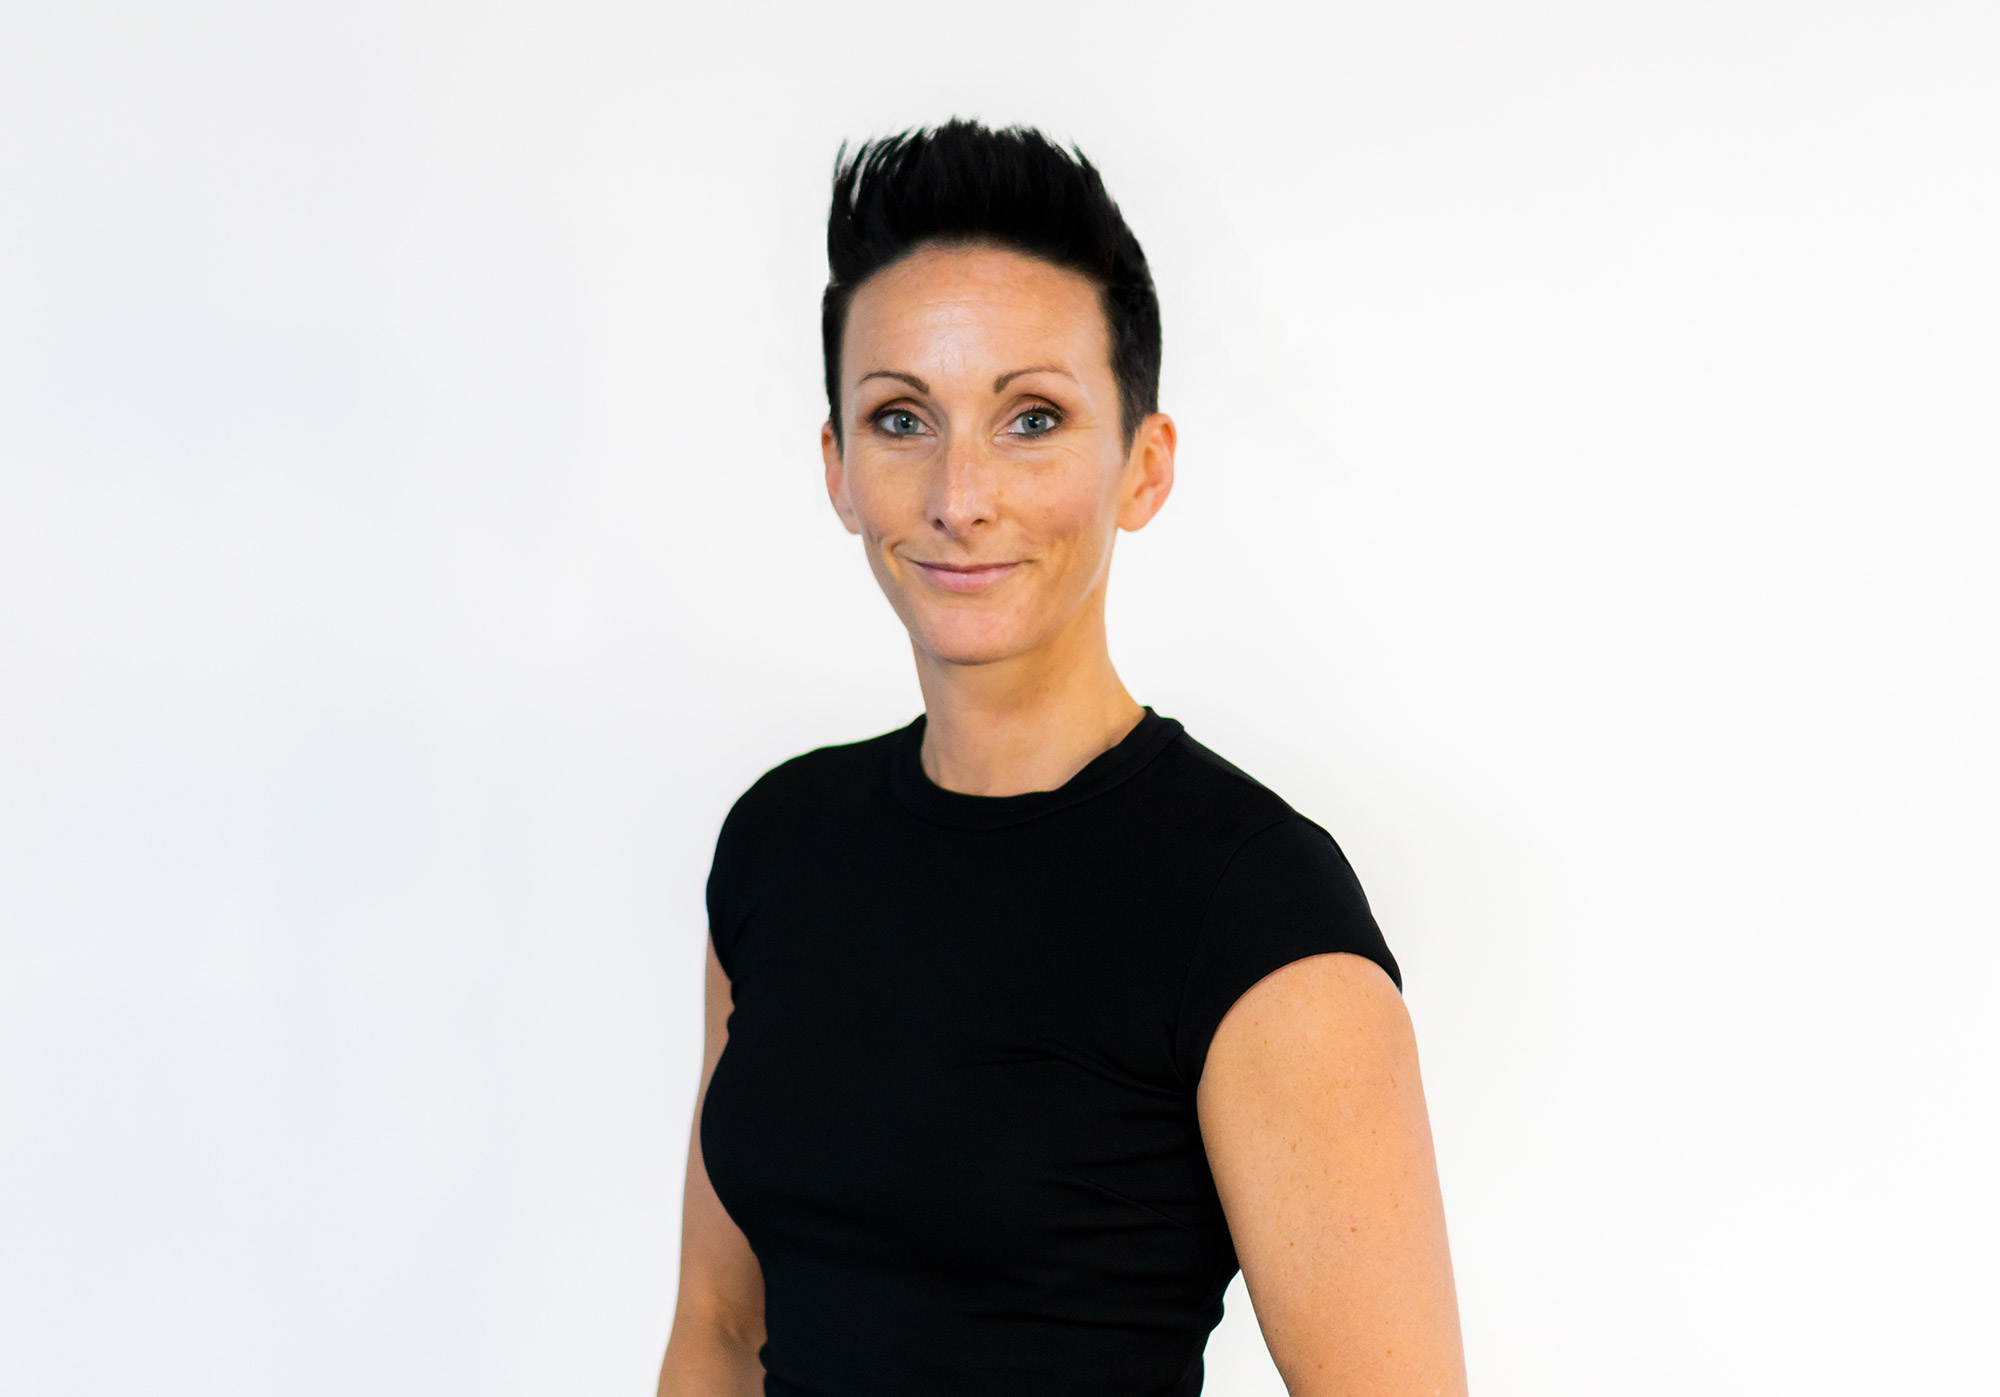 Video: New Total Fitness CEO Sophie Lawler talks about her first 100 days